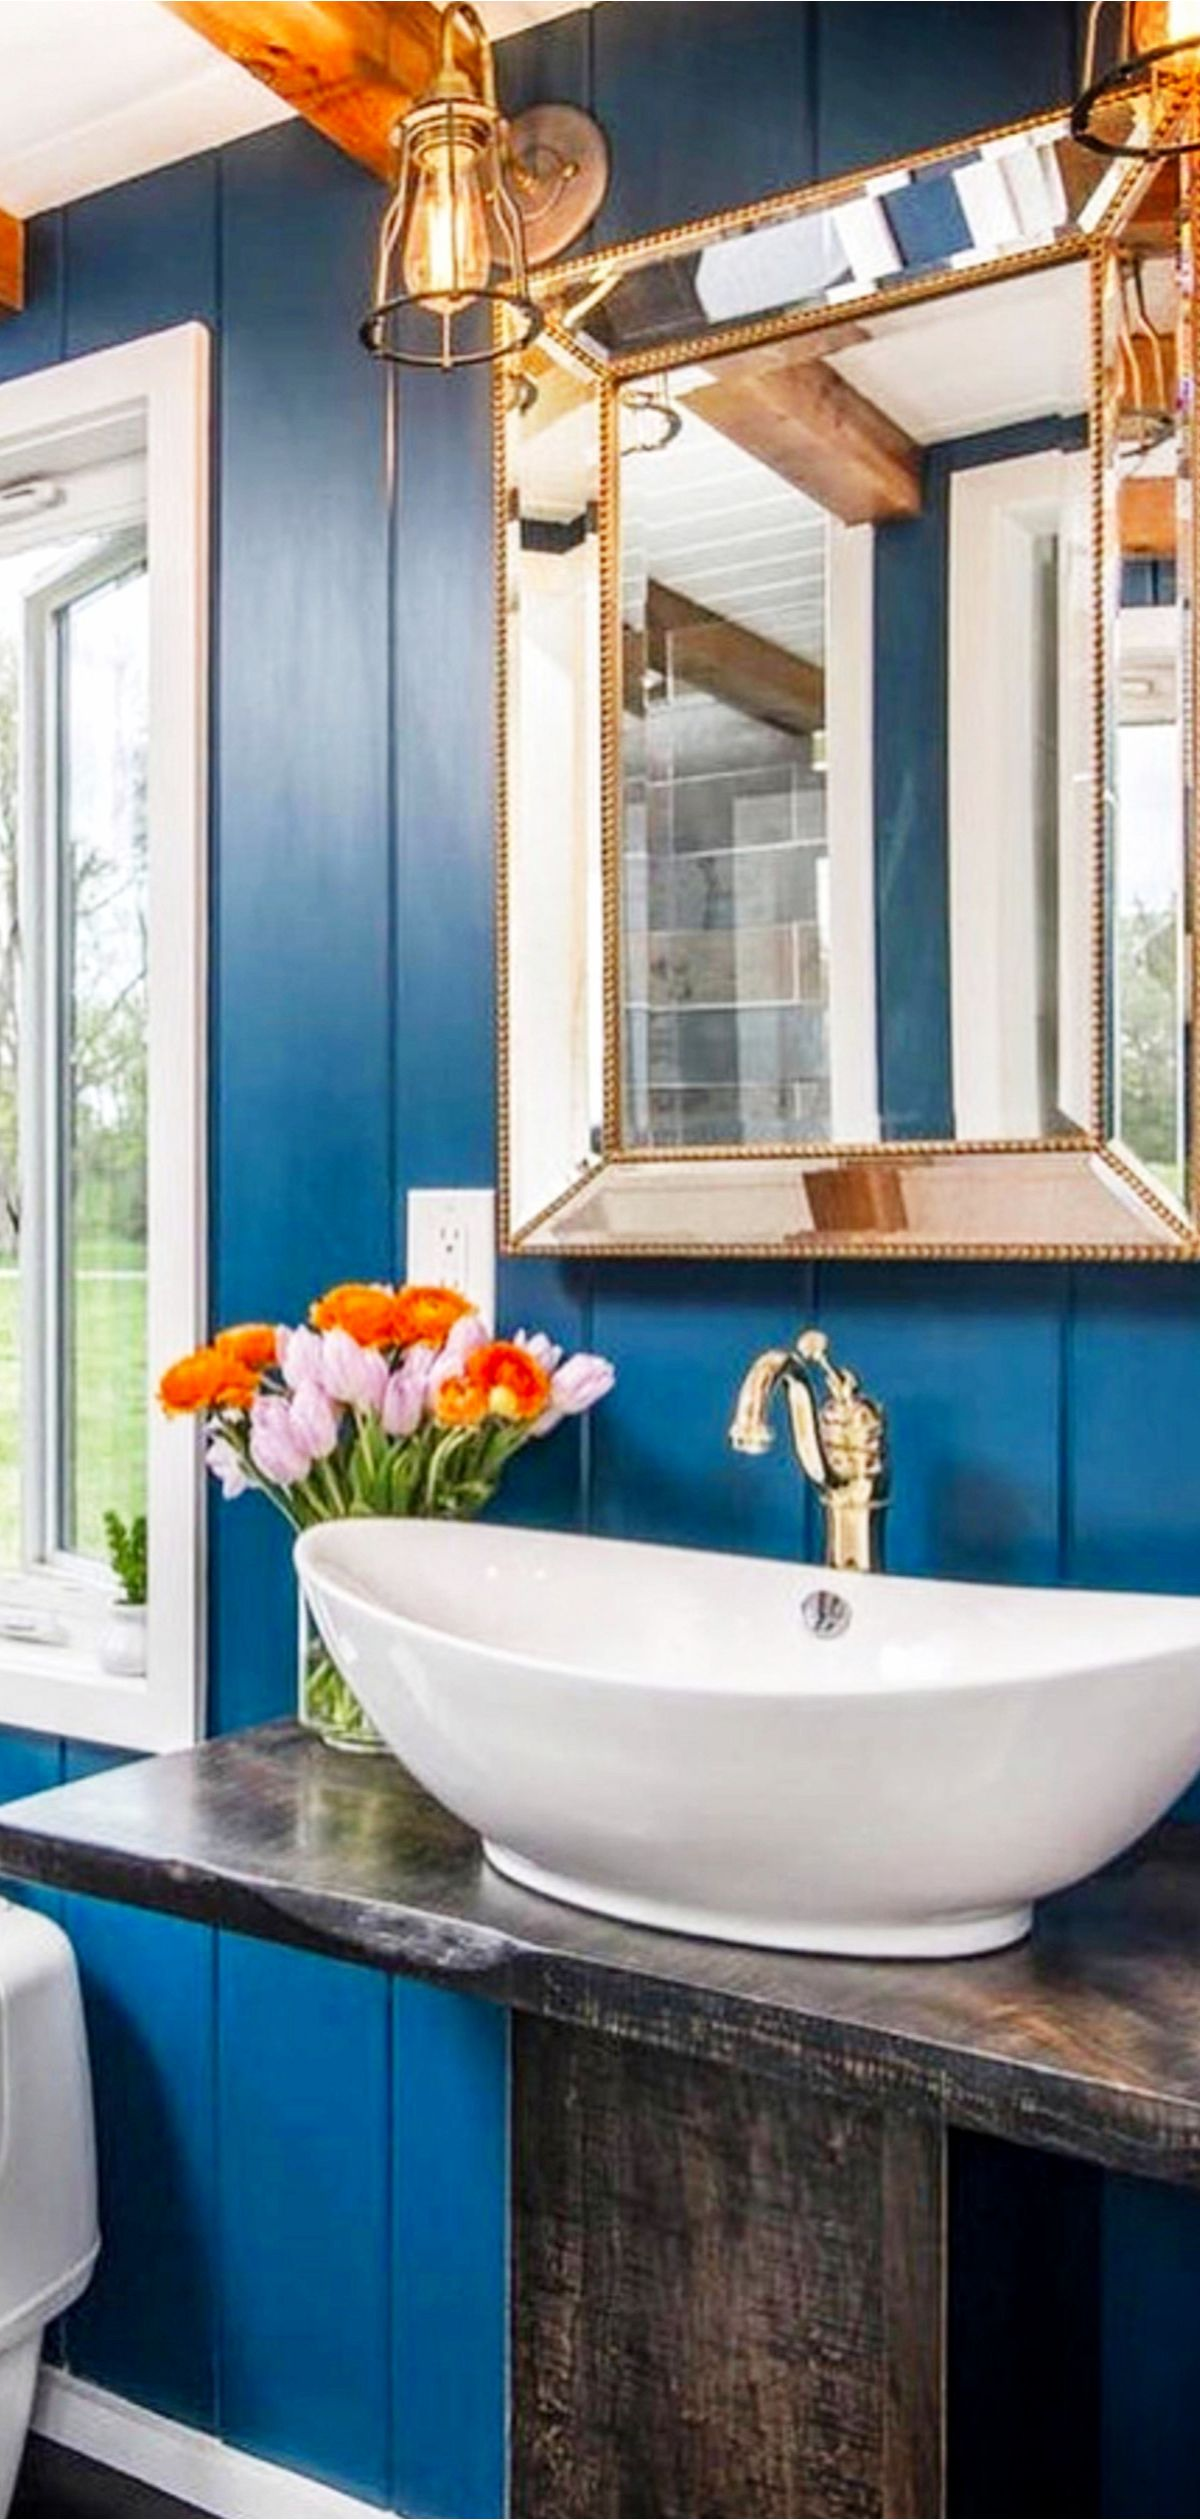 Love this blue bathroom great decorating idea for  small is actually also inside tiny houses pictures of and out videos rh pinterest